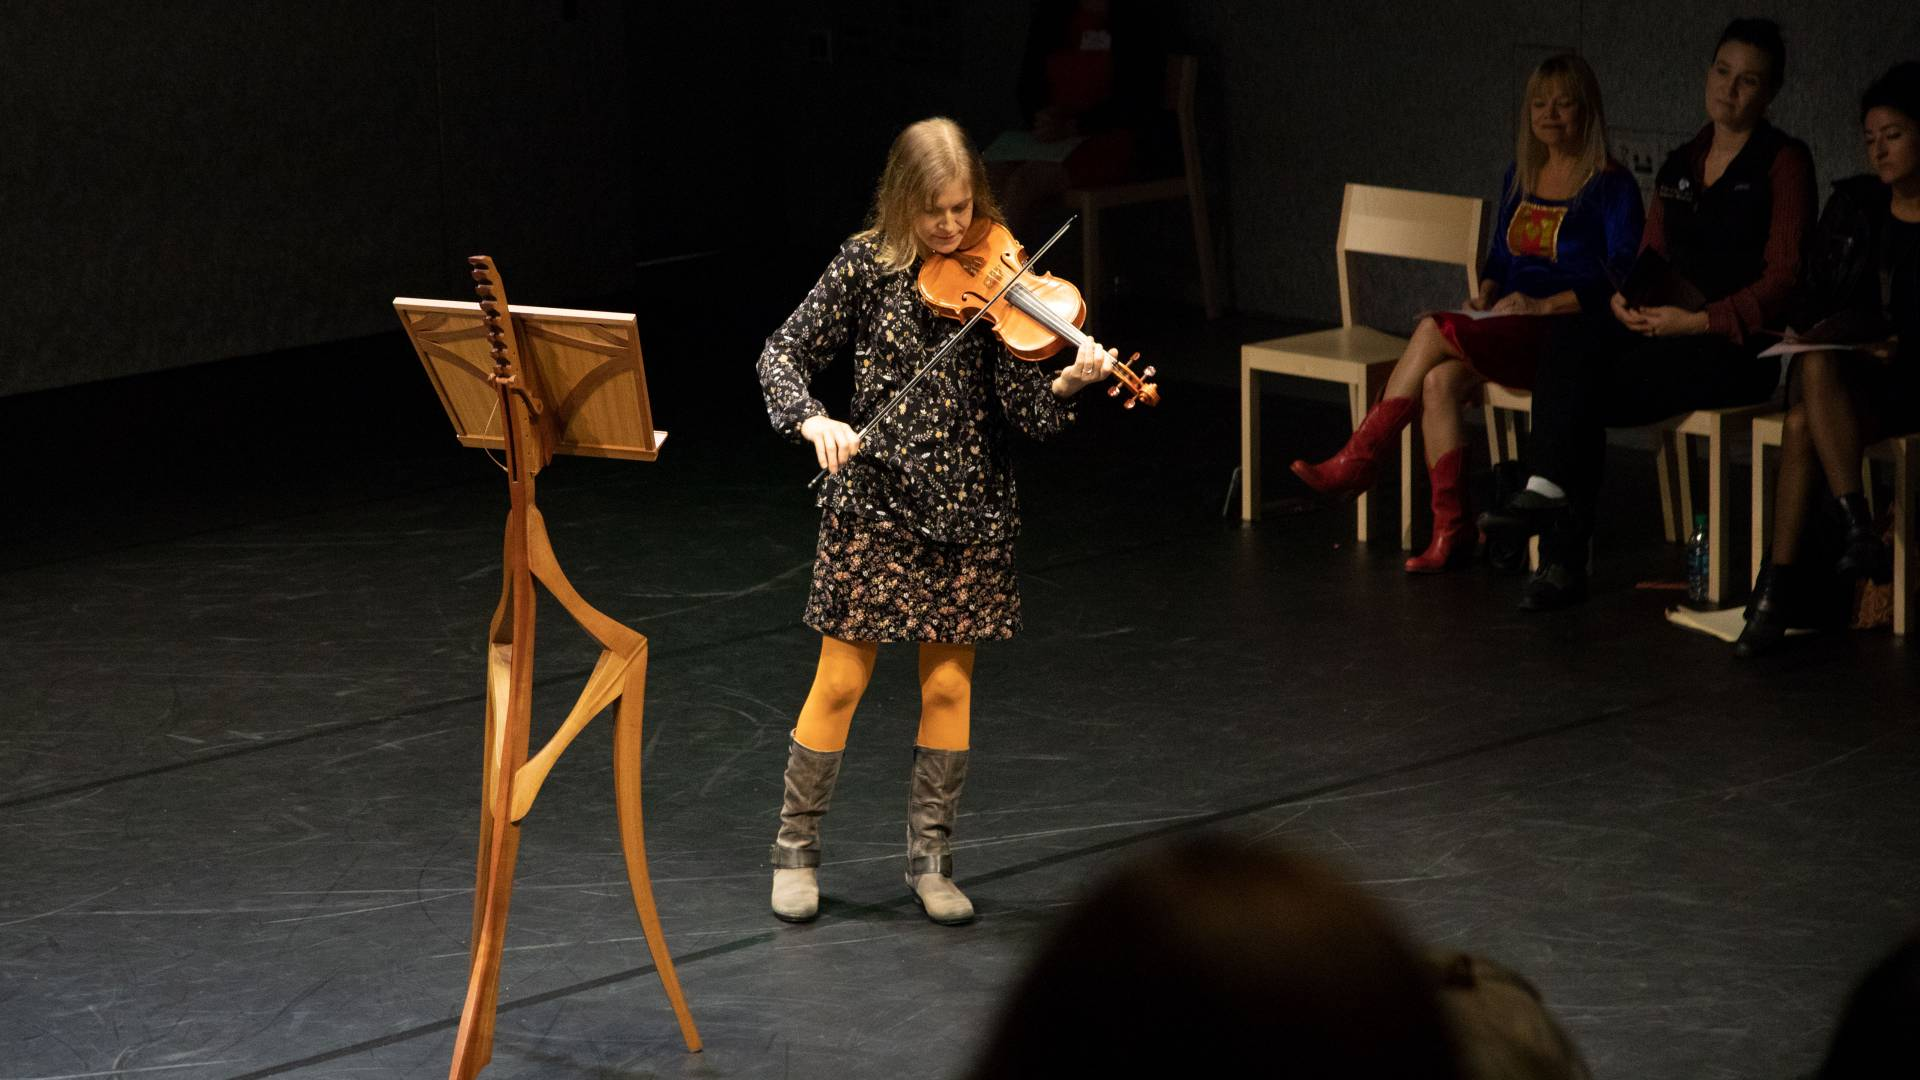 Amy Zaker playing the violin